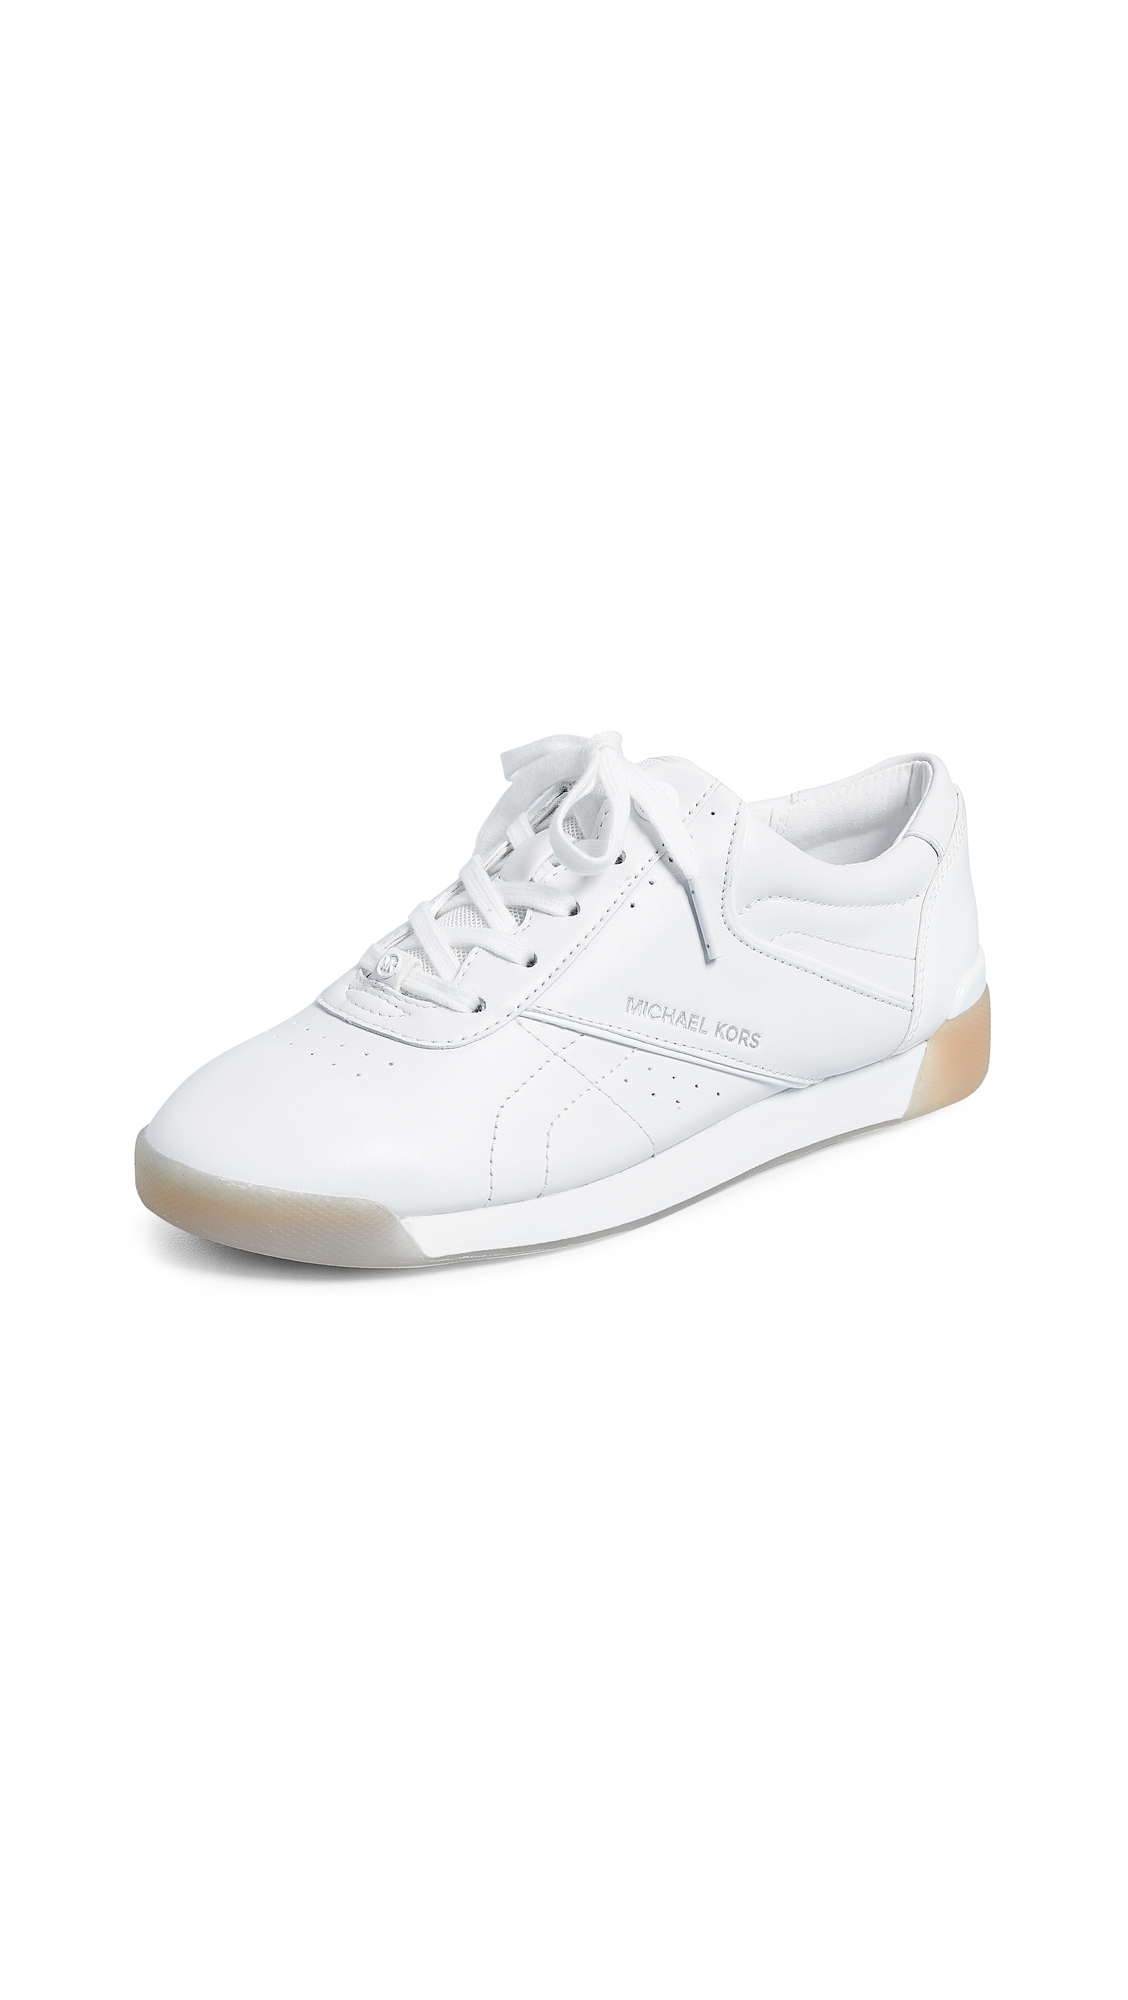 MICHAEL Michael Kors Addie Lace Up Sneakers - Optic White